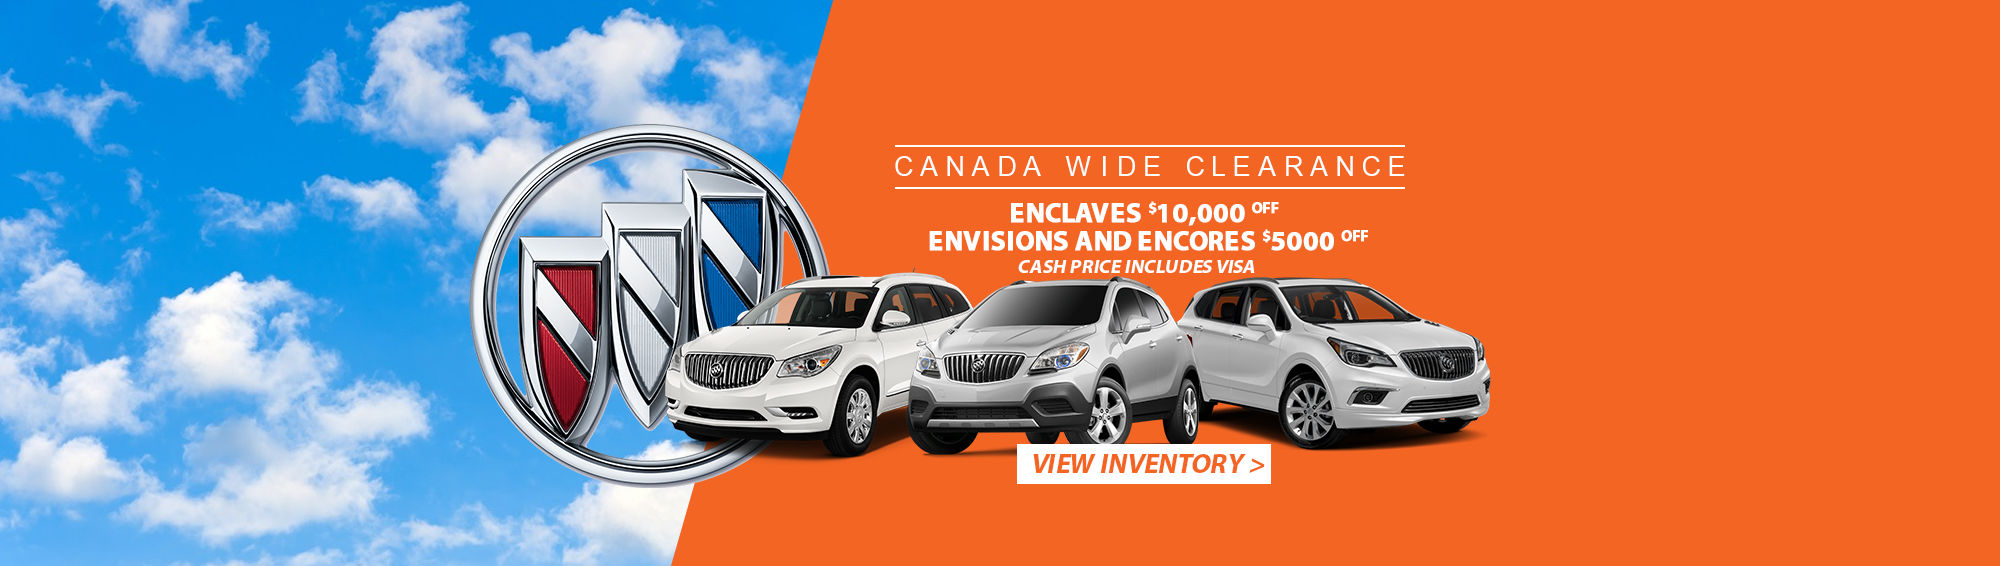 Buick Canada Wide Clearance (Sep 2017) (Web)